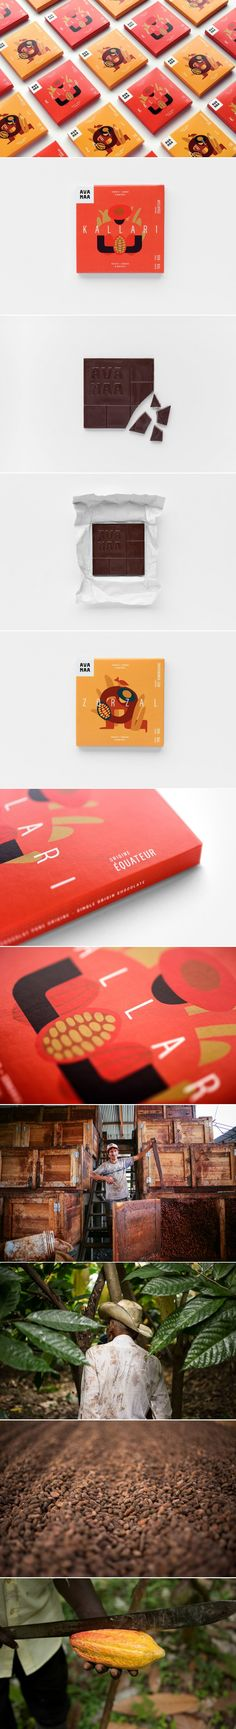 Avanaa is Bean-To-Bar Chocolate That Stands Out — The Dieline | Packaging & Branding Design & Innovation News